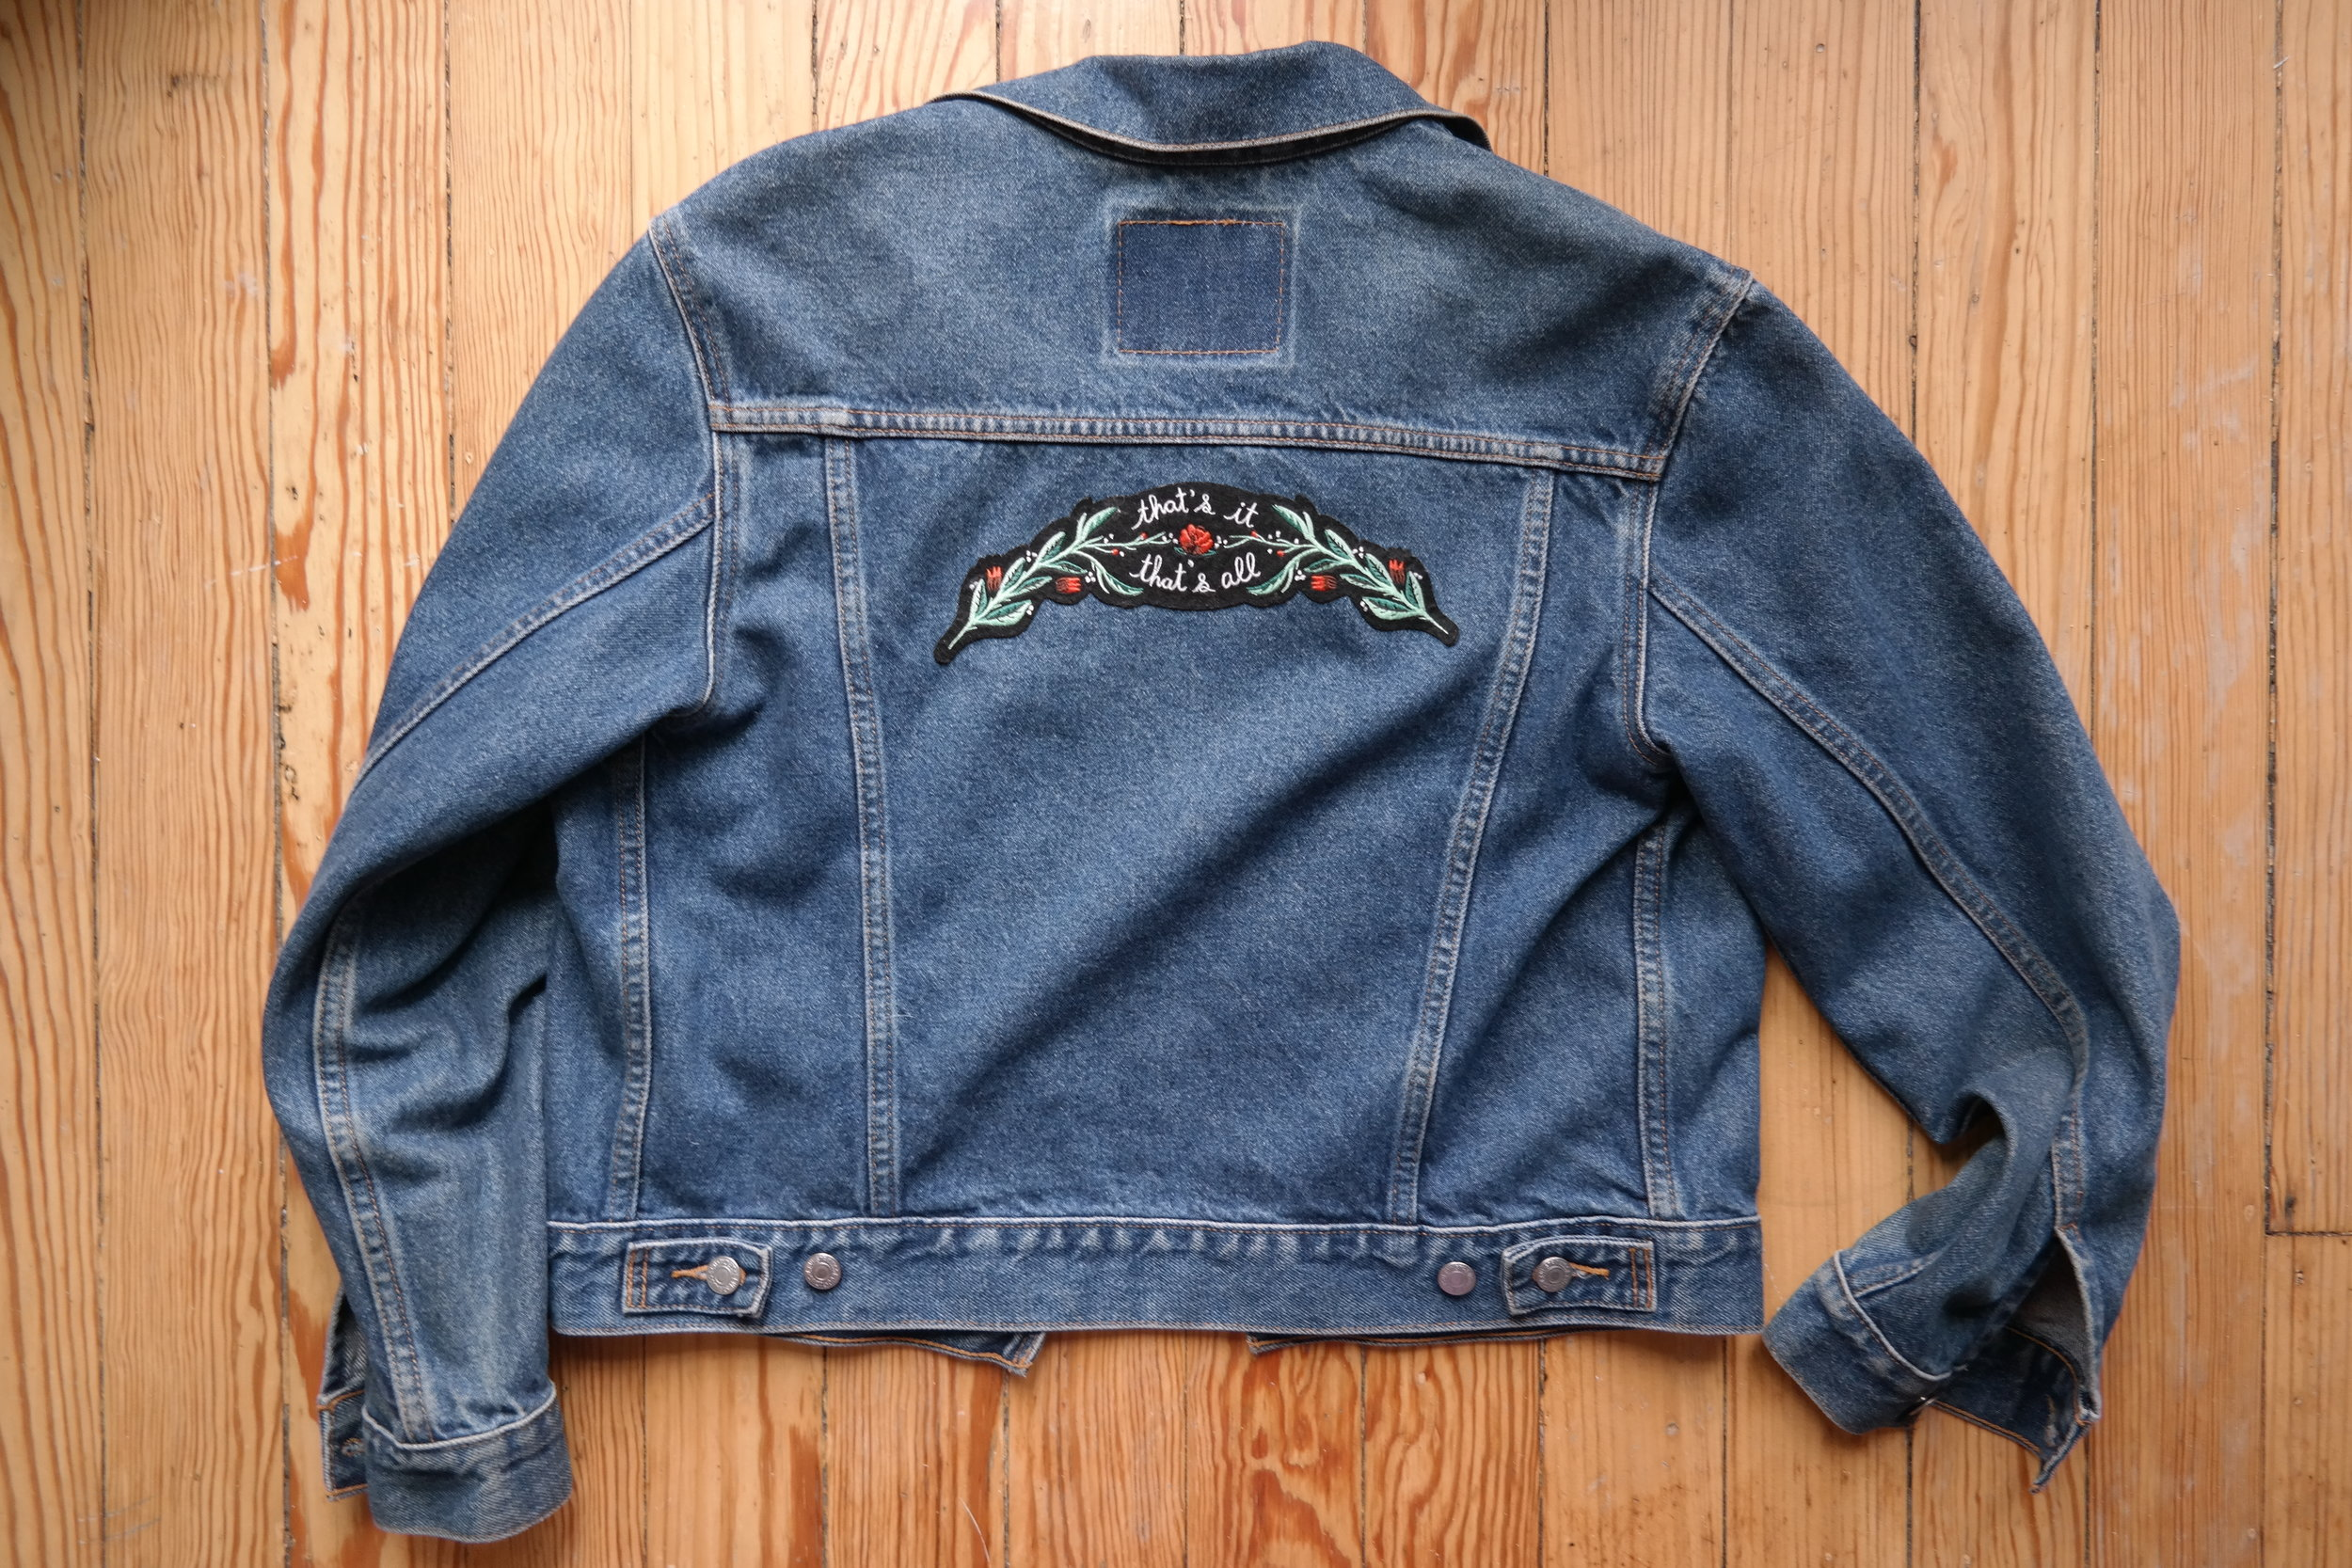 Vintage Levis and Patches